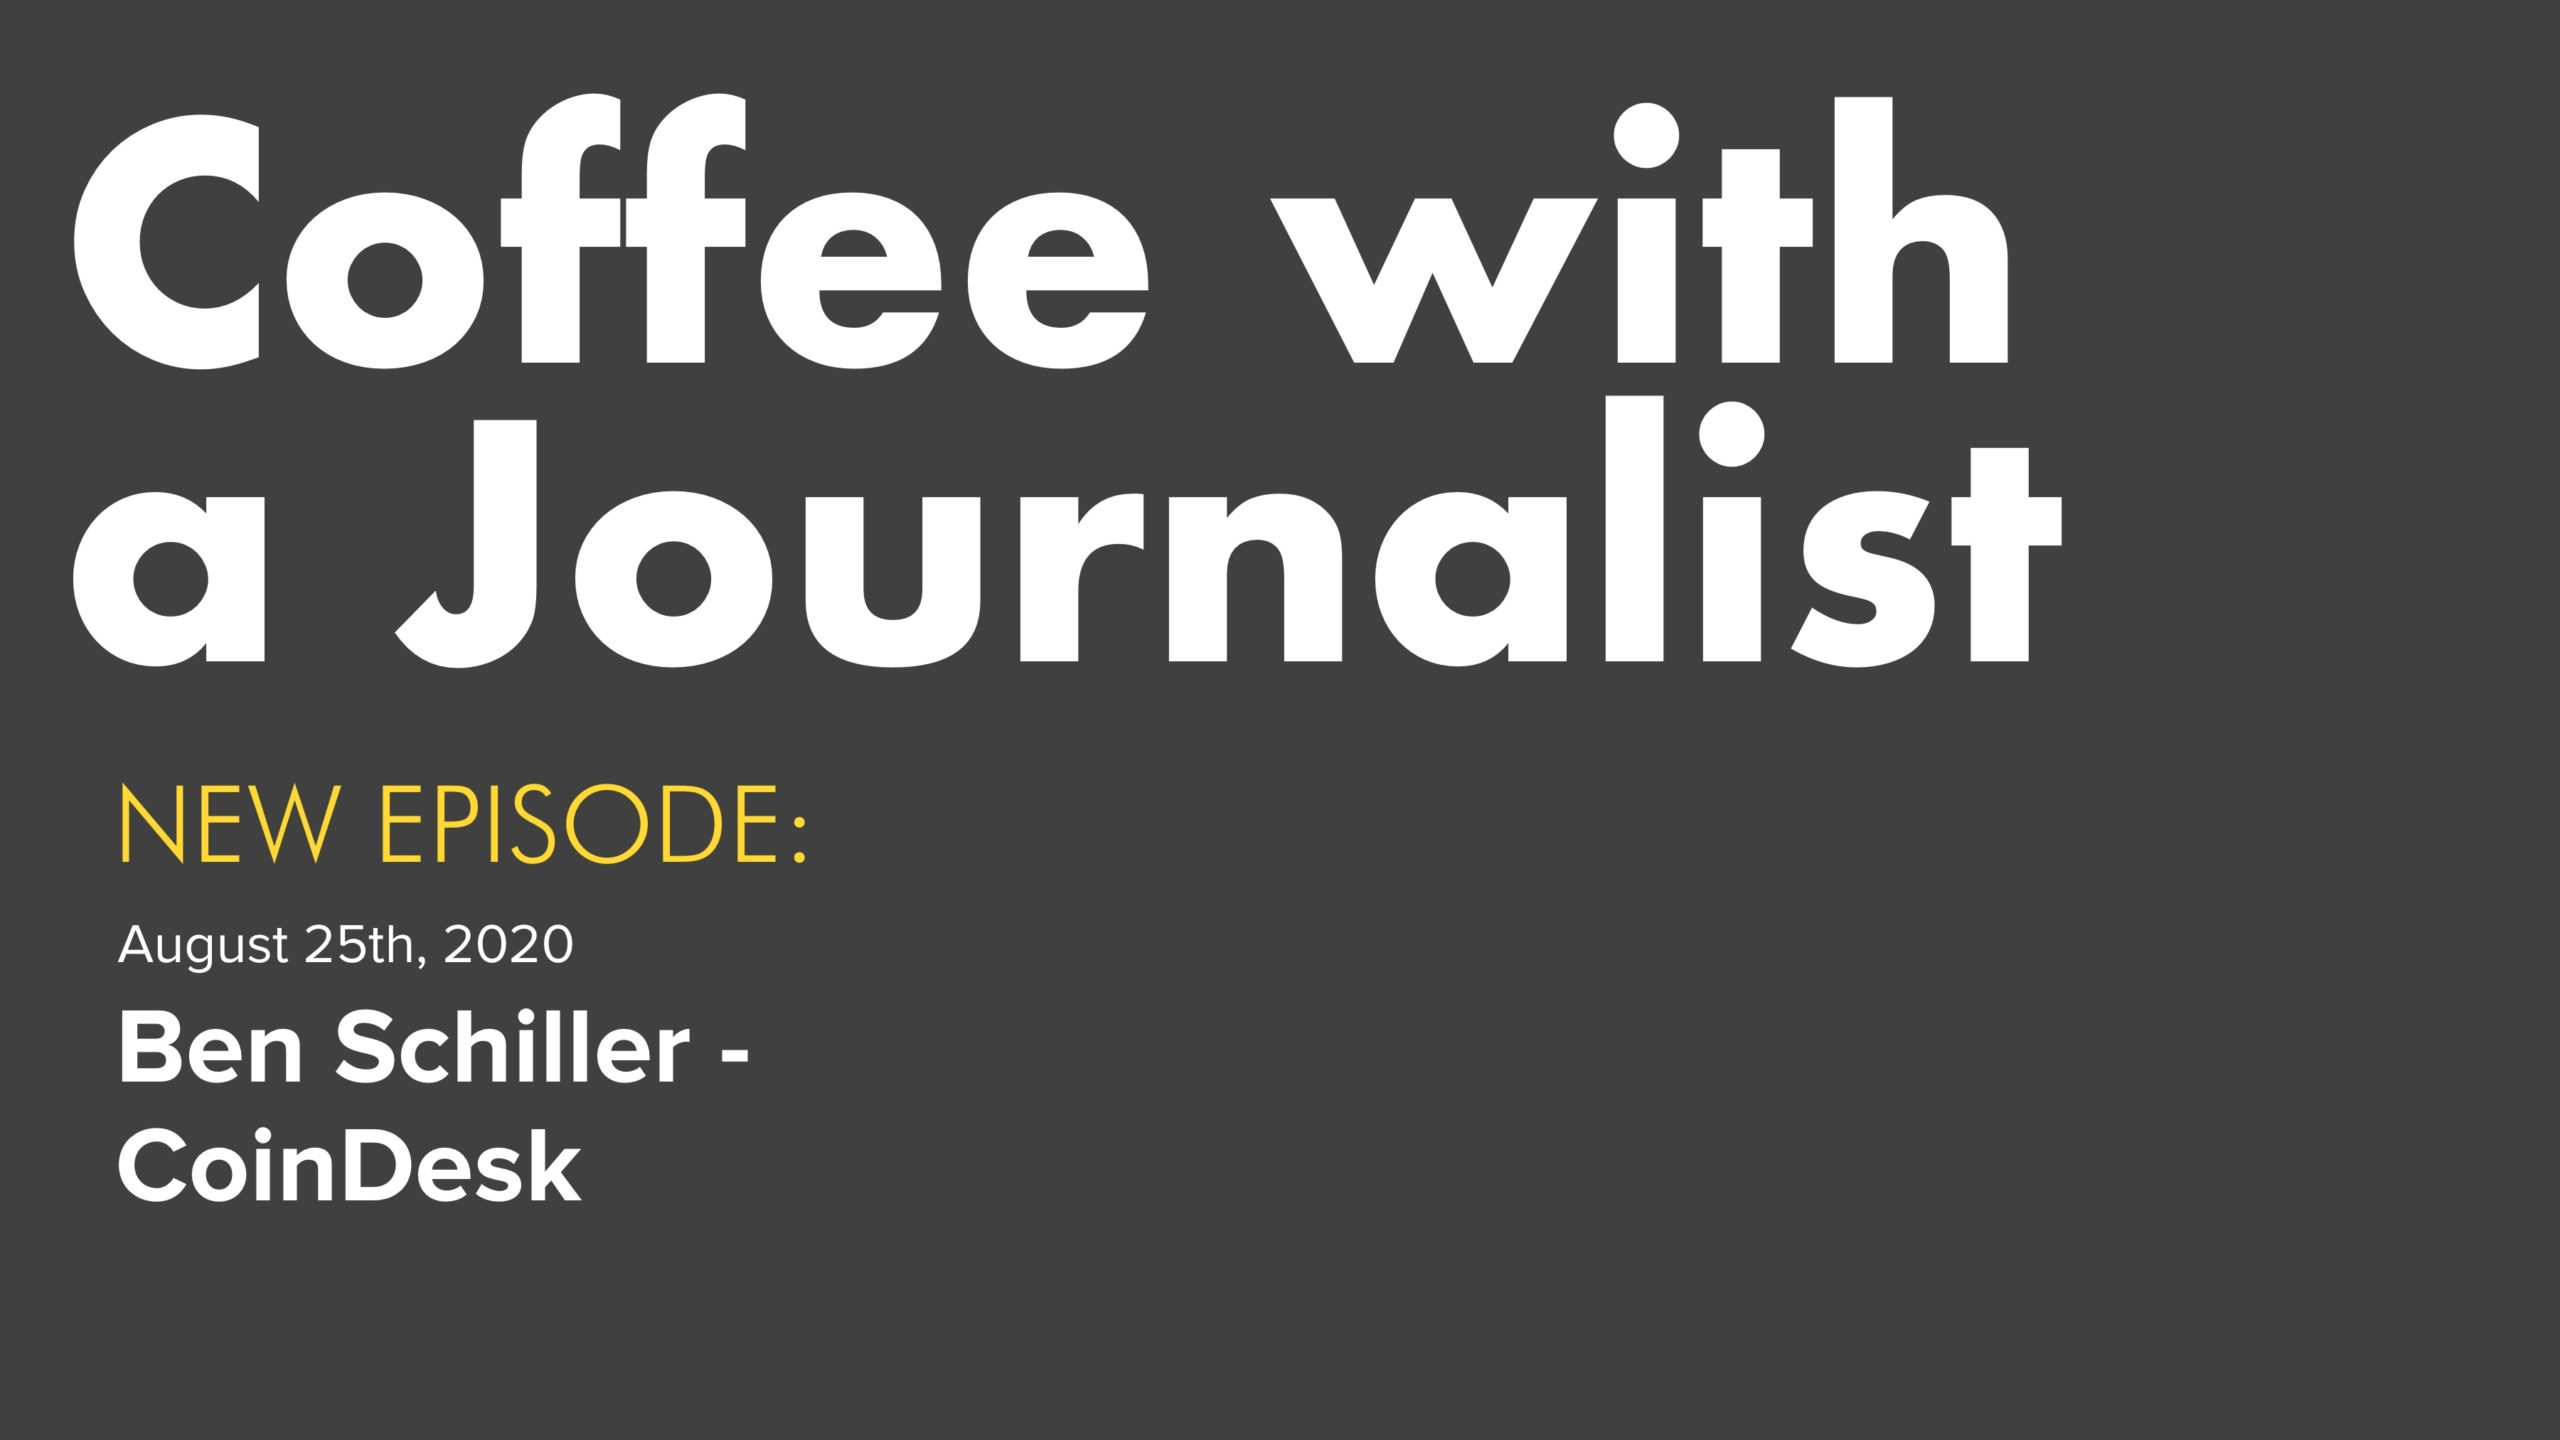 Coffee With A Journalist - Ben Schiller, CoinDesk